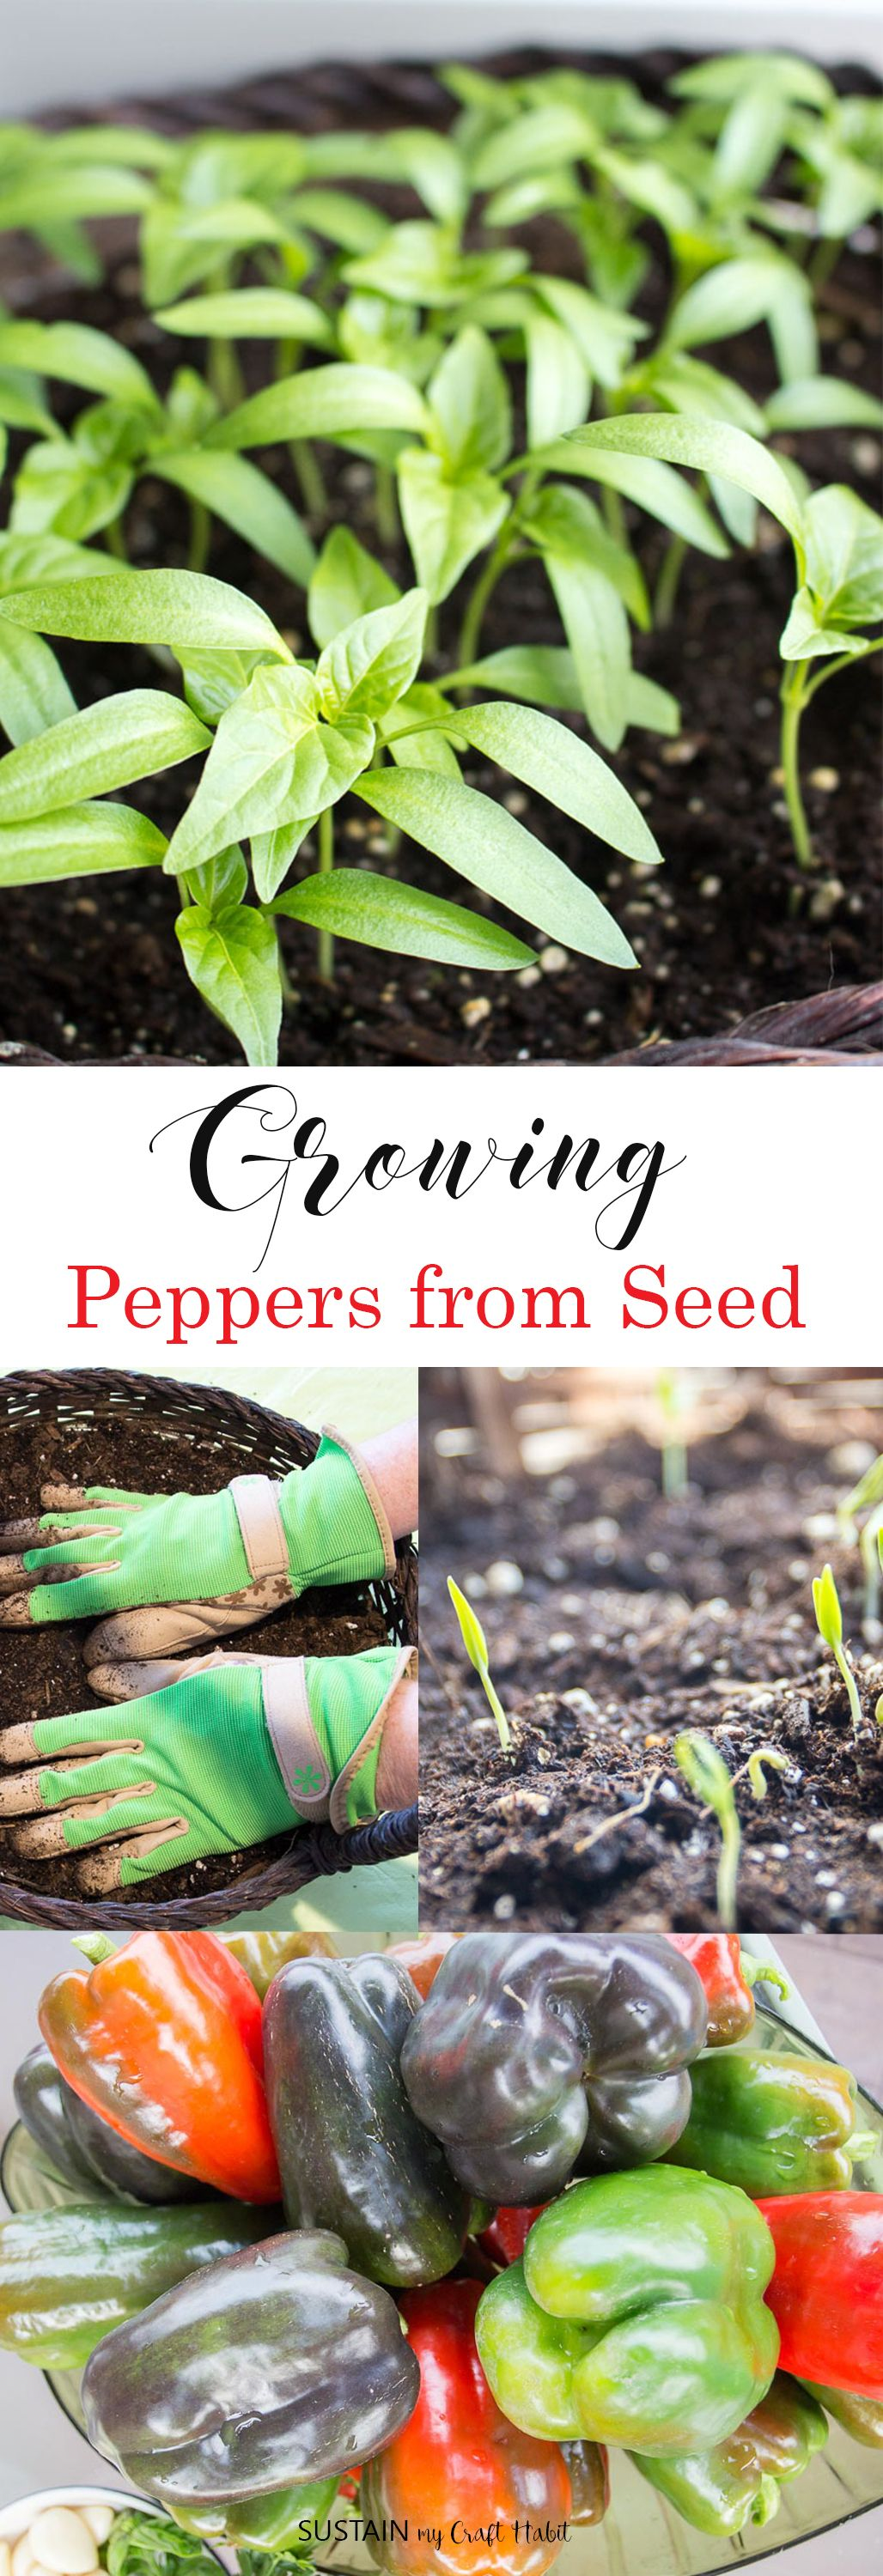 Growing peppers from seed growing peppers stuffed